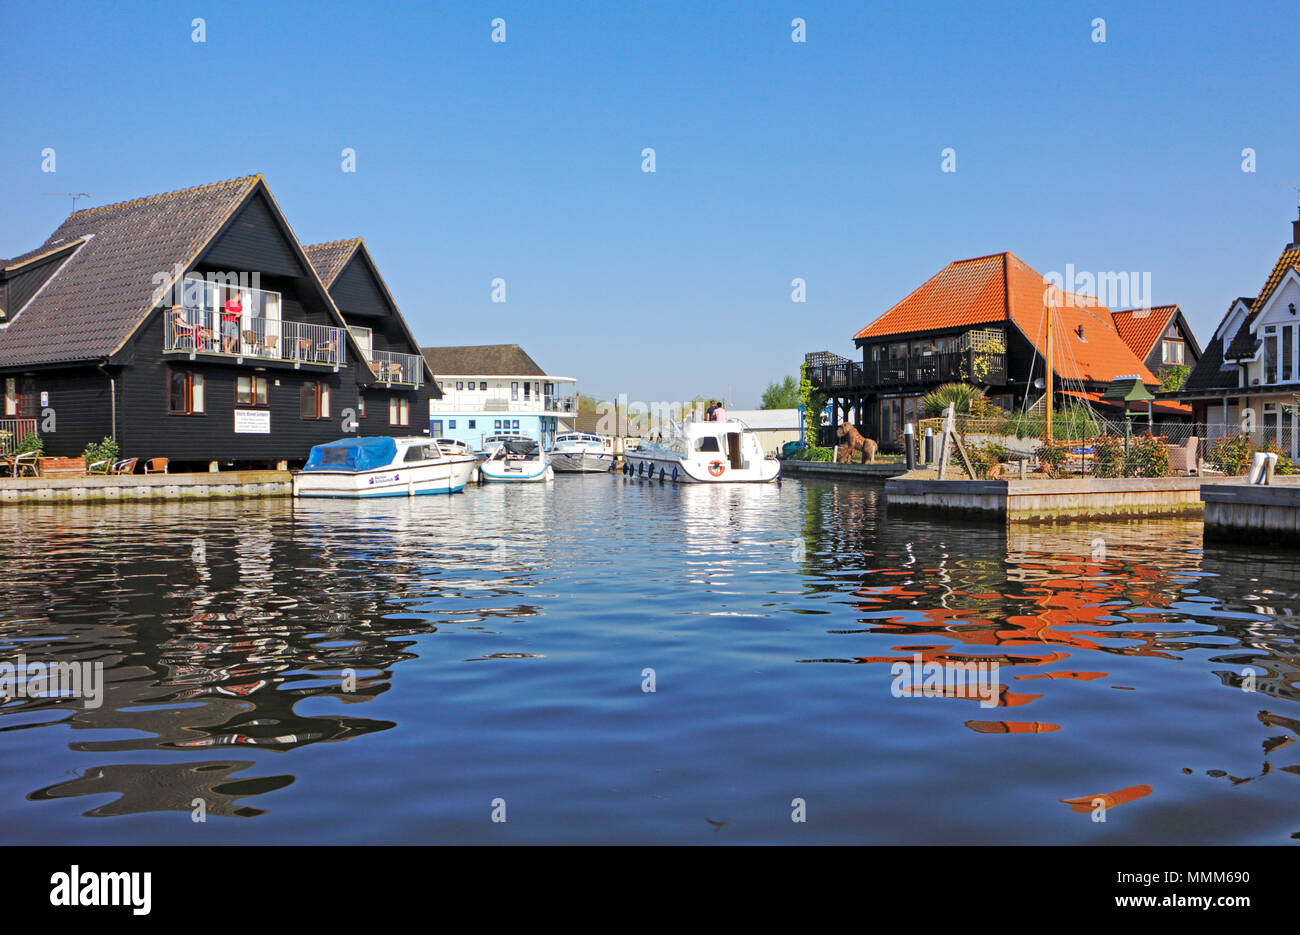 Riverside properties and boat dykes by the River Bure on the Norfolk Broads at Wroxham, Norfolk, England, United Kingdom, Europe. Stock Photo